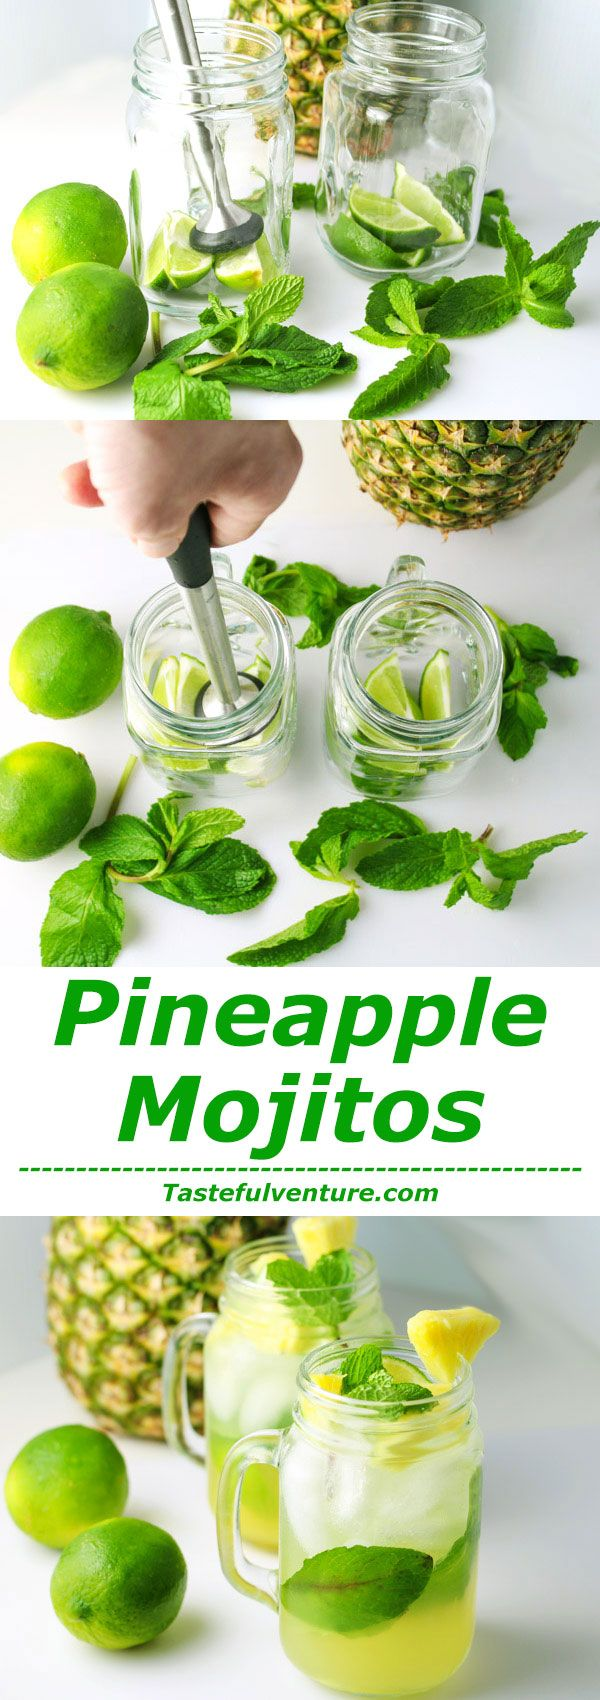 These Pineapple Mojitos are so light and refreshing, it's the perfect Cocktail! | Tastefulventure.com